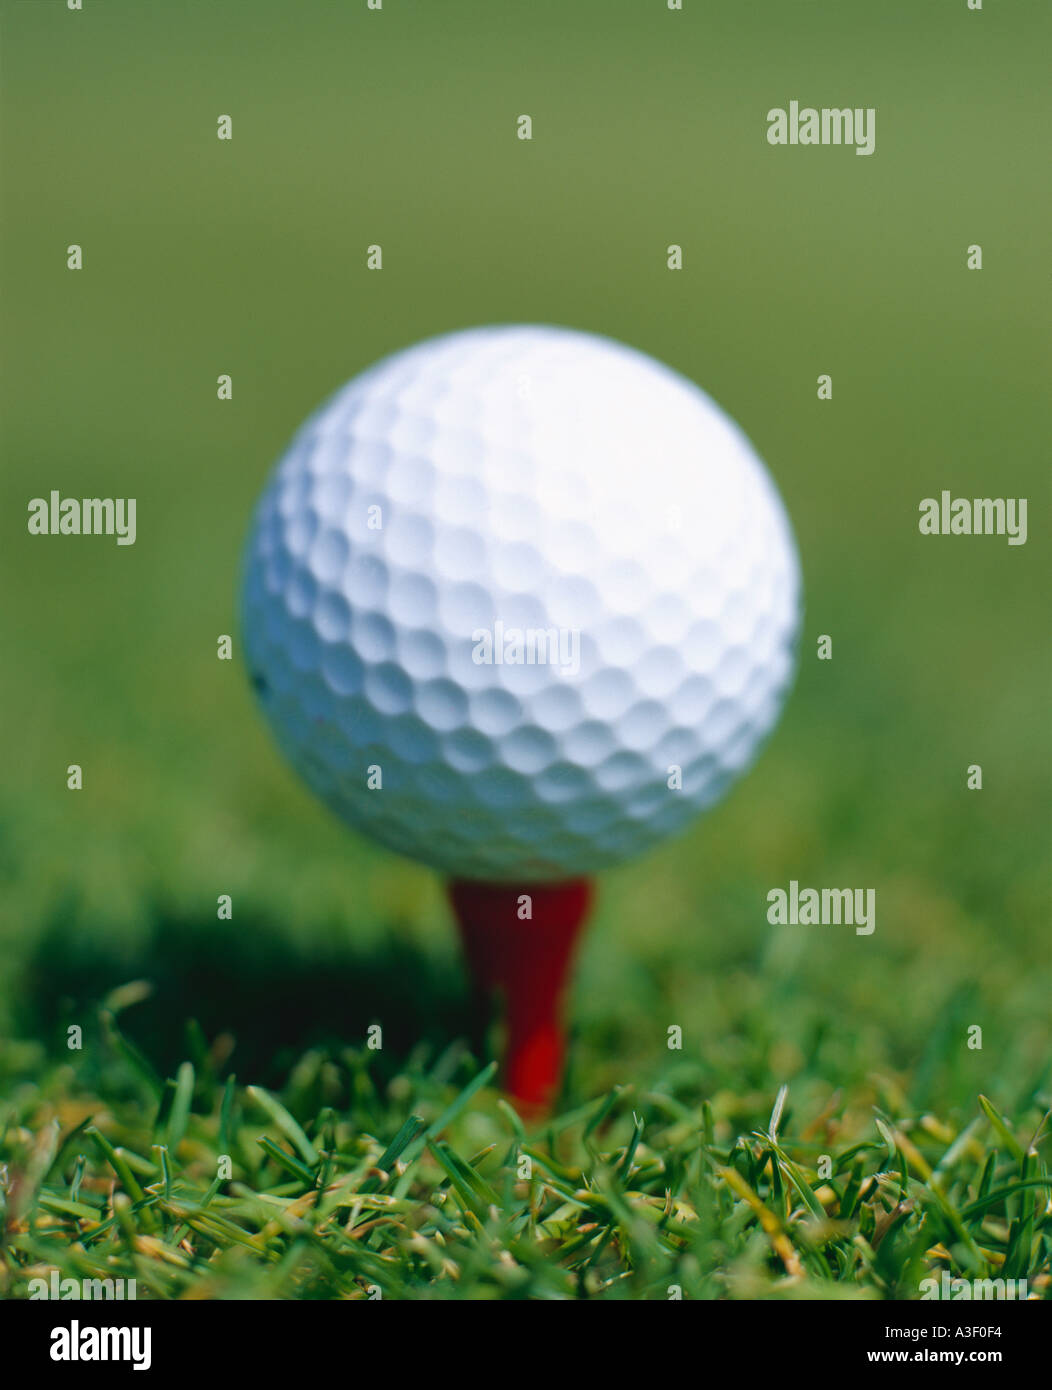 close up of Golf Ball on a tee - Stock Image